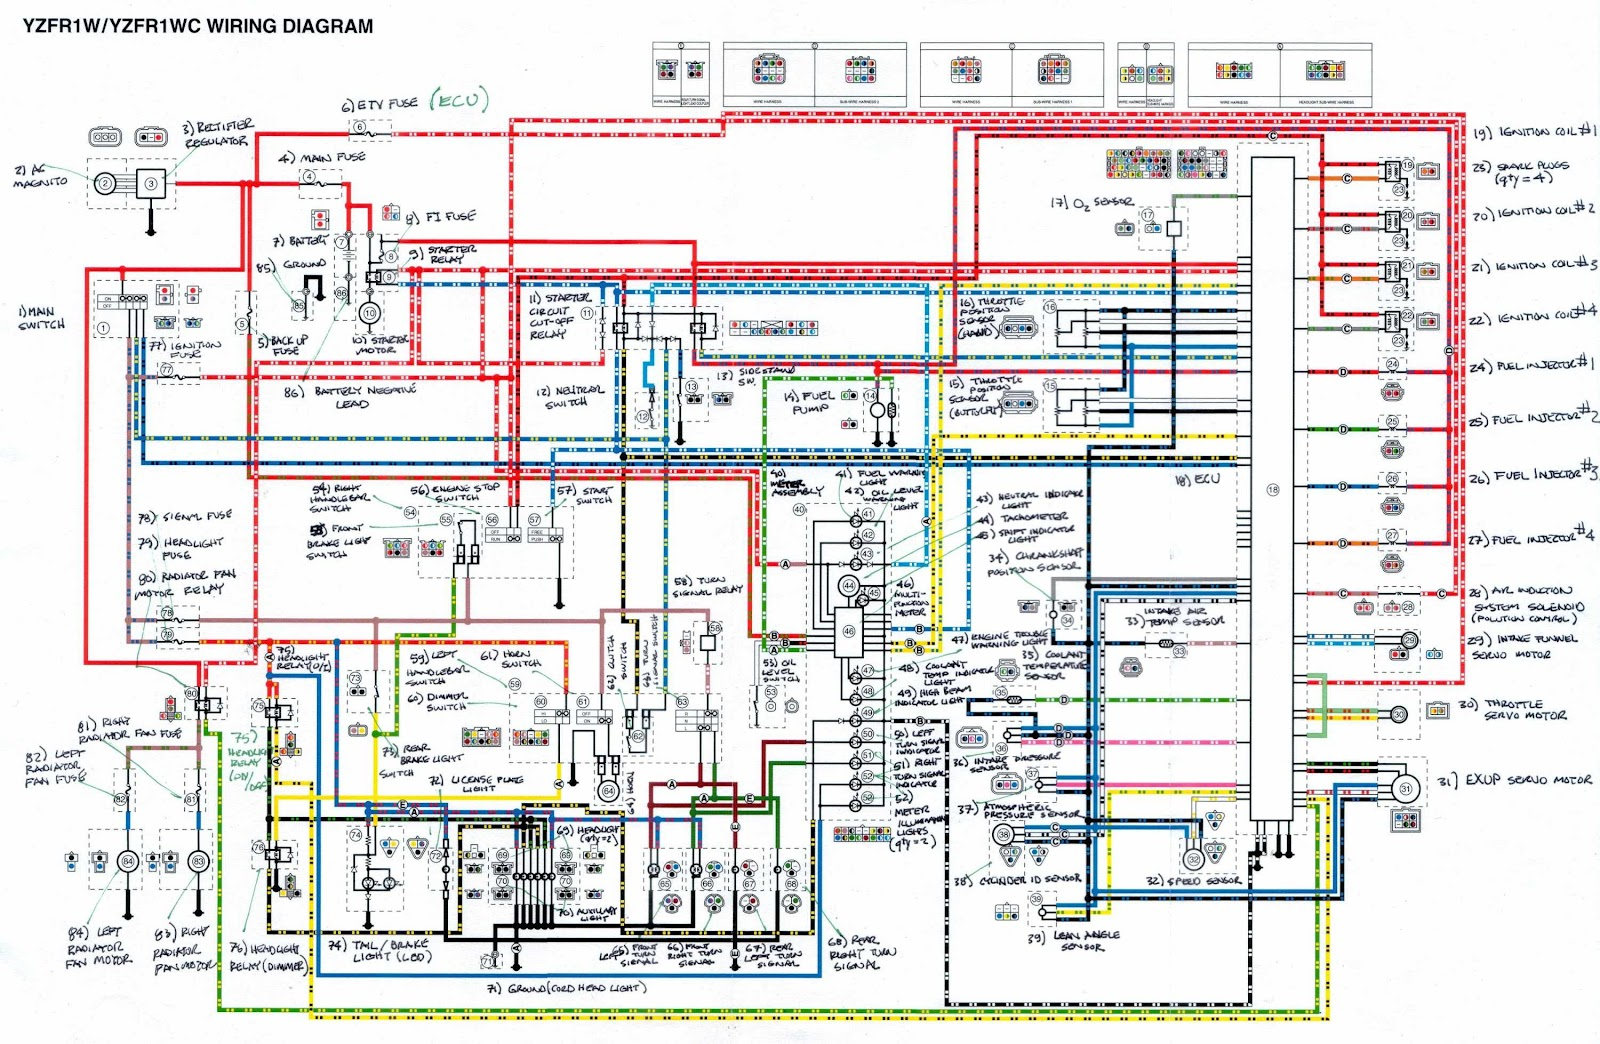 5c3da 92 s10 fuse panel diagram digital resources triumph daytona 600 wiring diagram yamaha 600 2011 wiring diagram #7